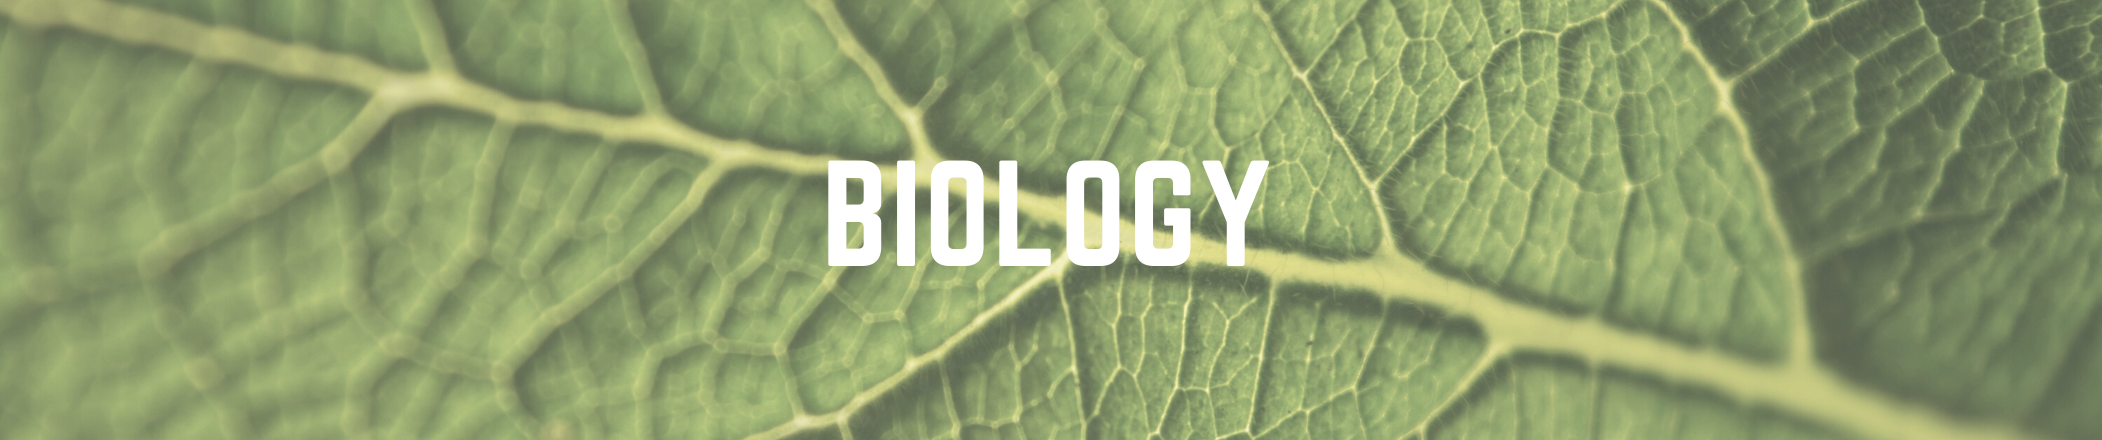 biology text with image background